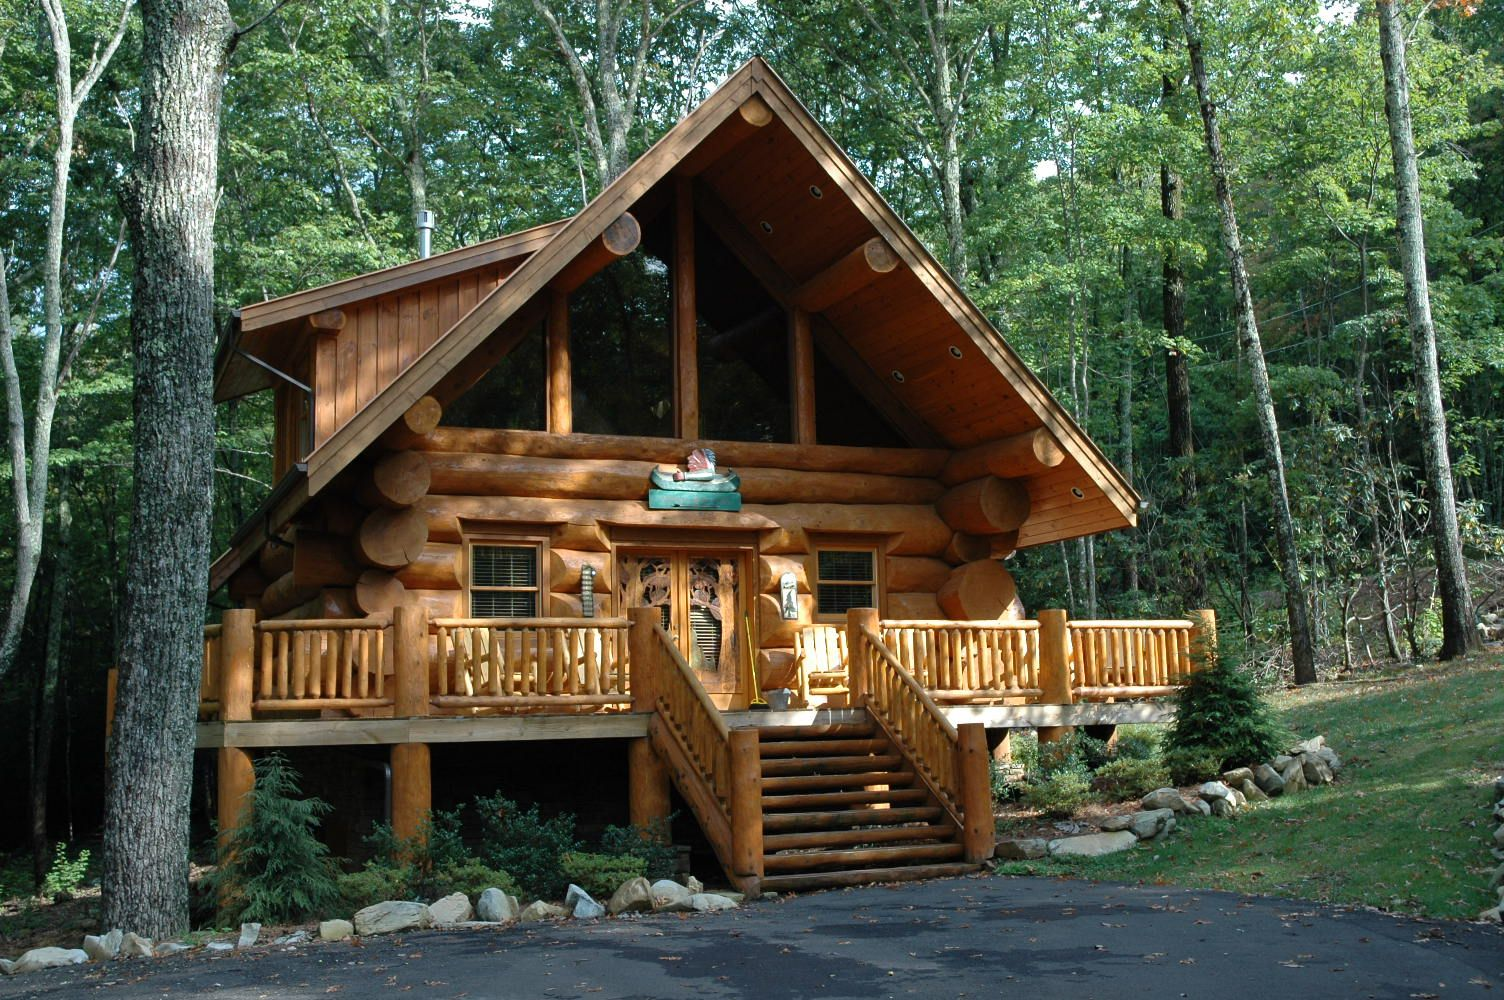 Could You Live In A Log Cabin One That Had The Same Log